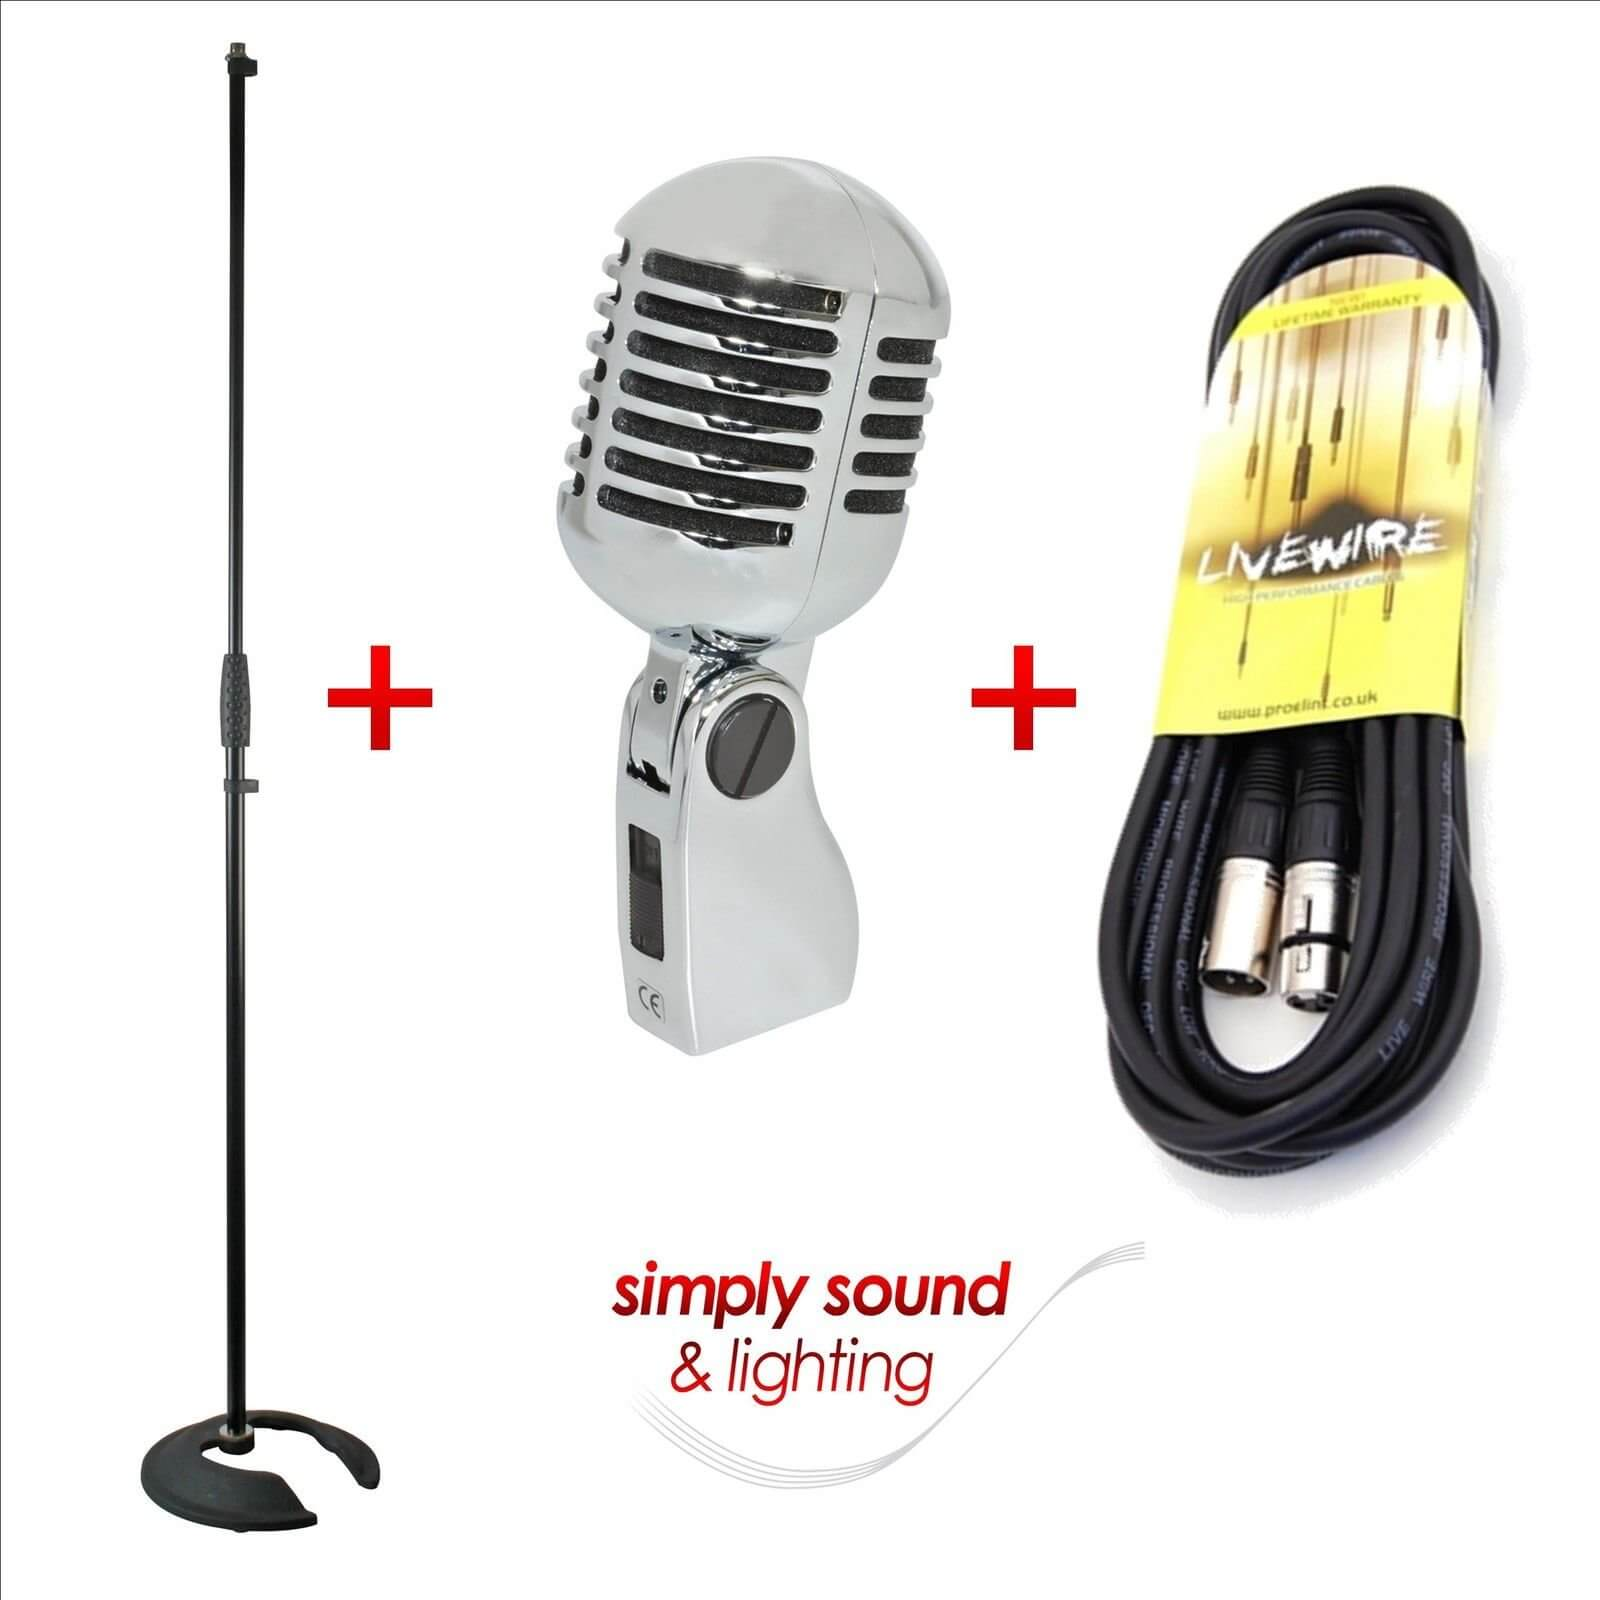 Retro Vintage Silver Style Microphone + Mic Stand & 6m Cable